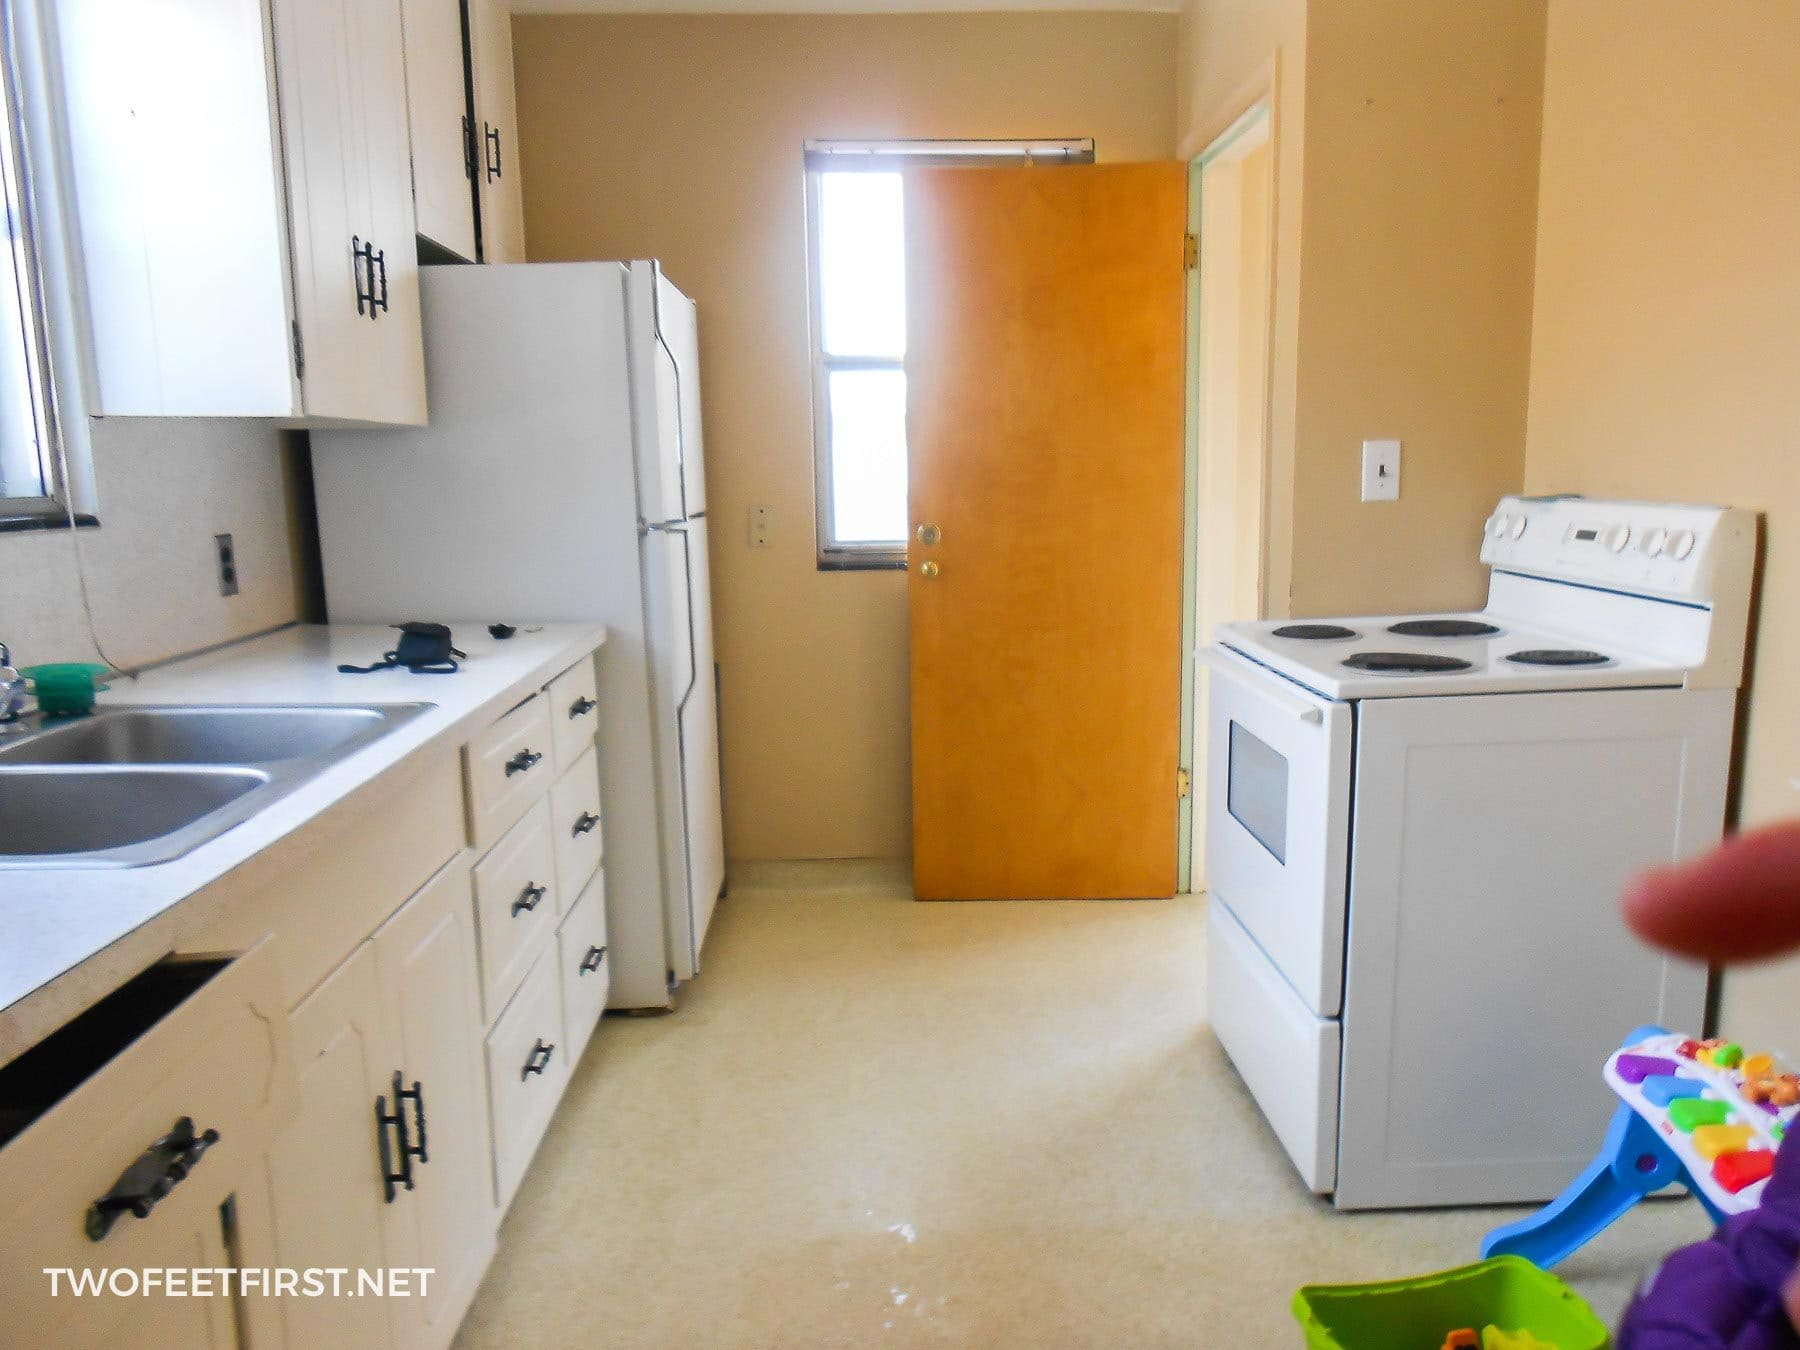 Adding A Dishwasher To Existing Cabinets